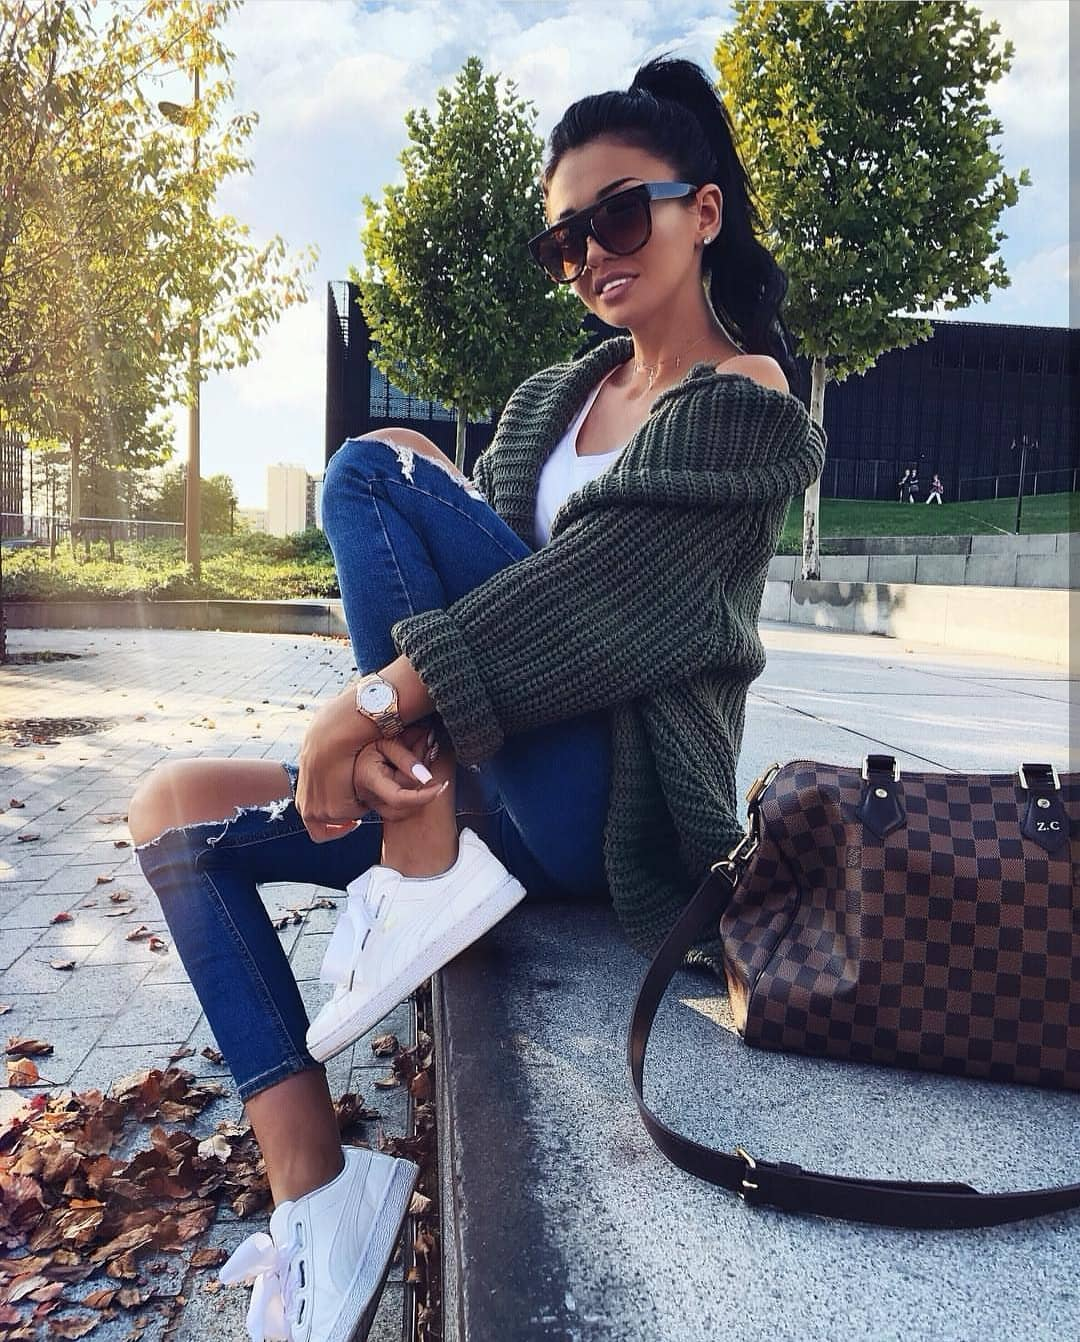 Green Oversized Cardigan With White Top, Ripped Blue Jeans And White Kicks 2019